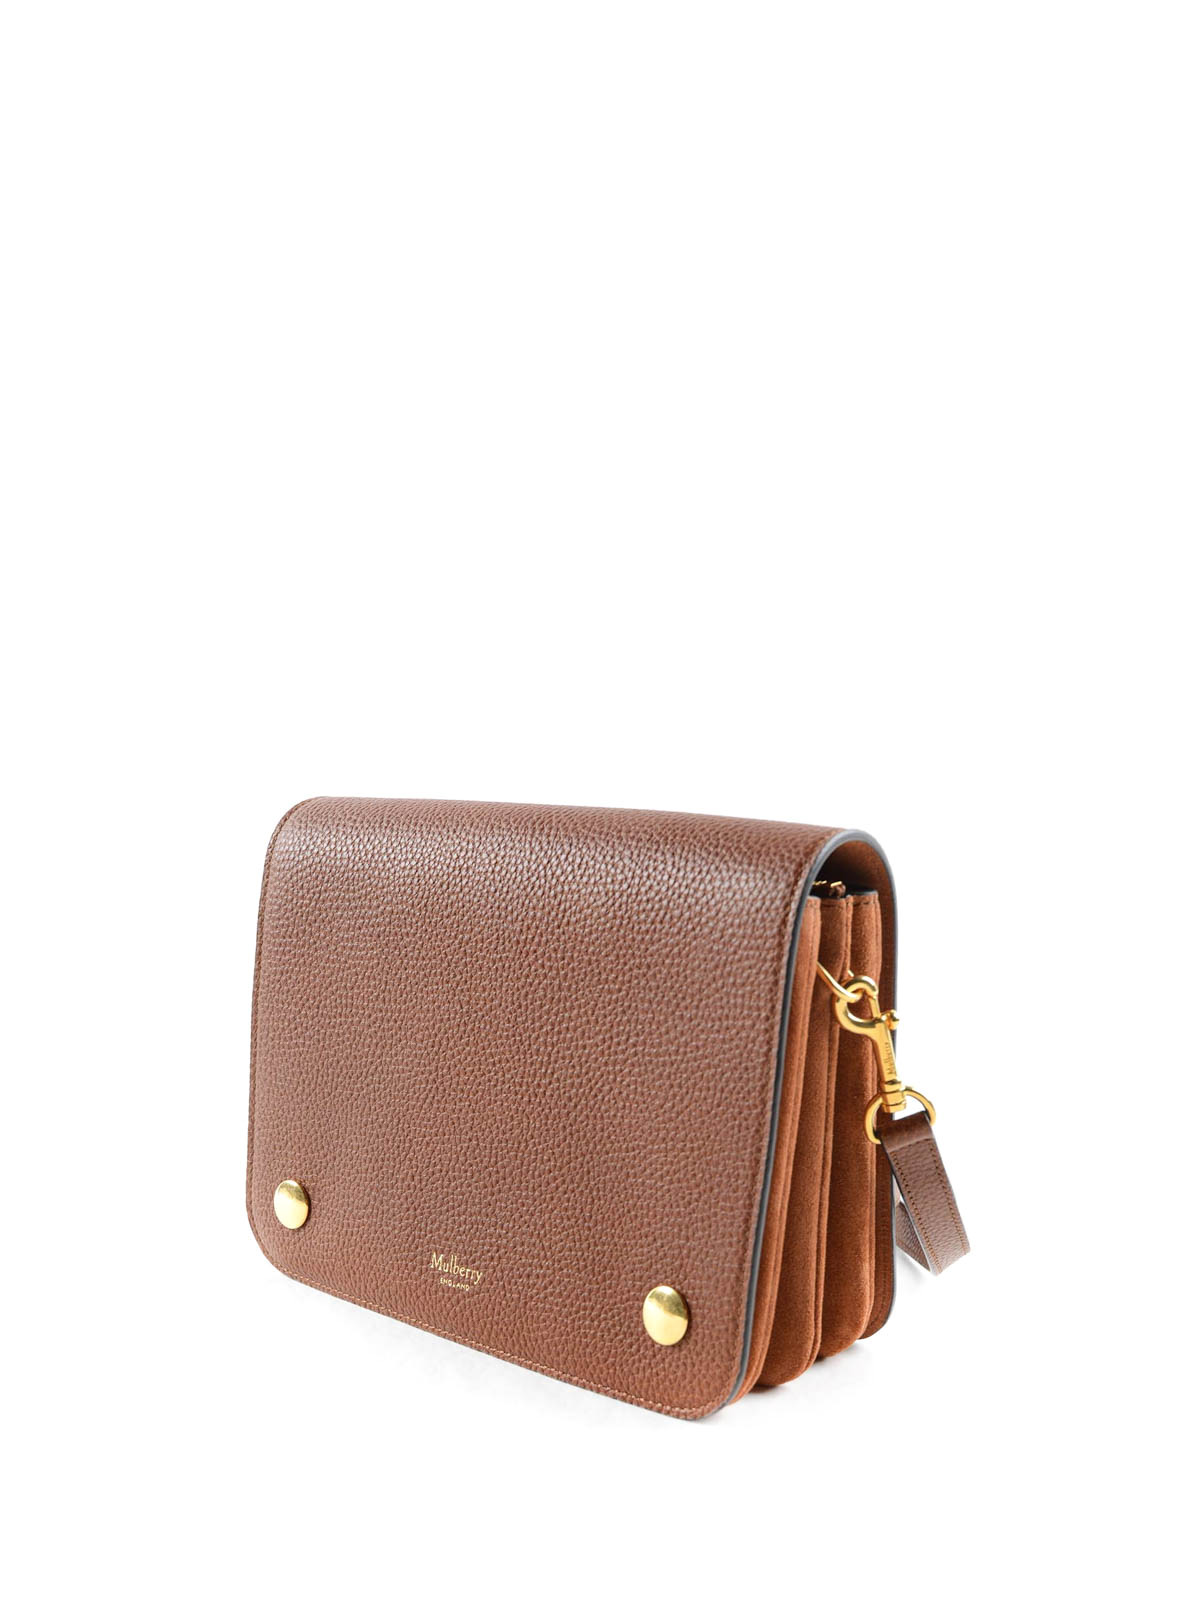 a675c0a876f2 store mulberry cross body bags online clifton leather crossbody bag 149a3  f3d58